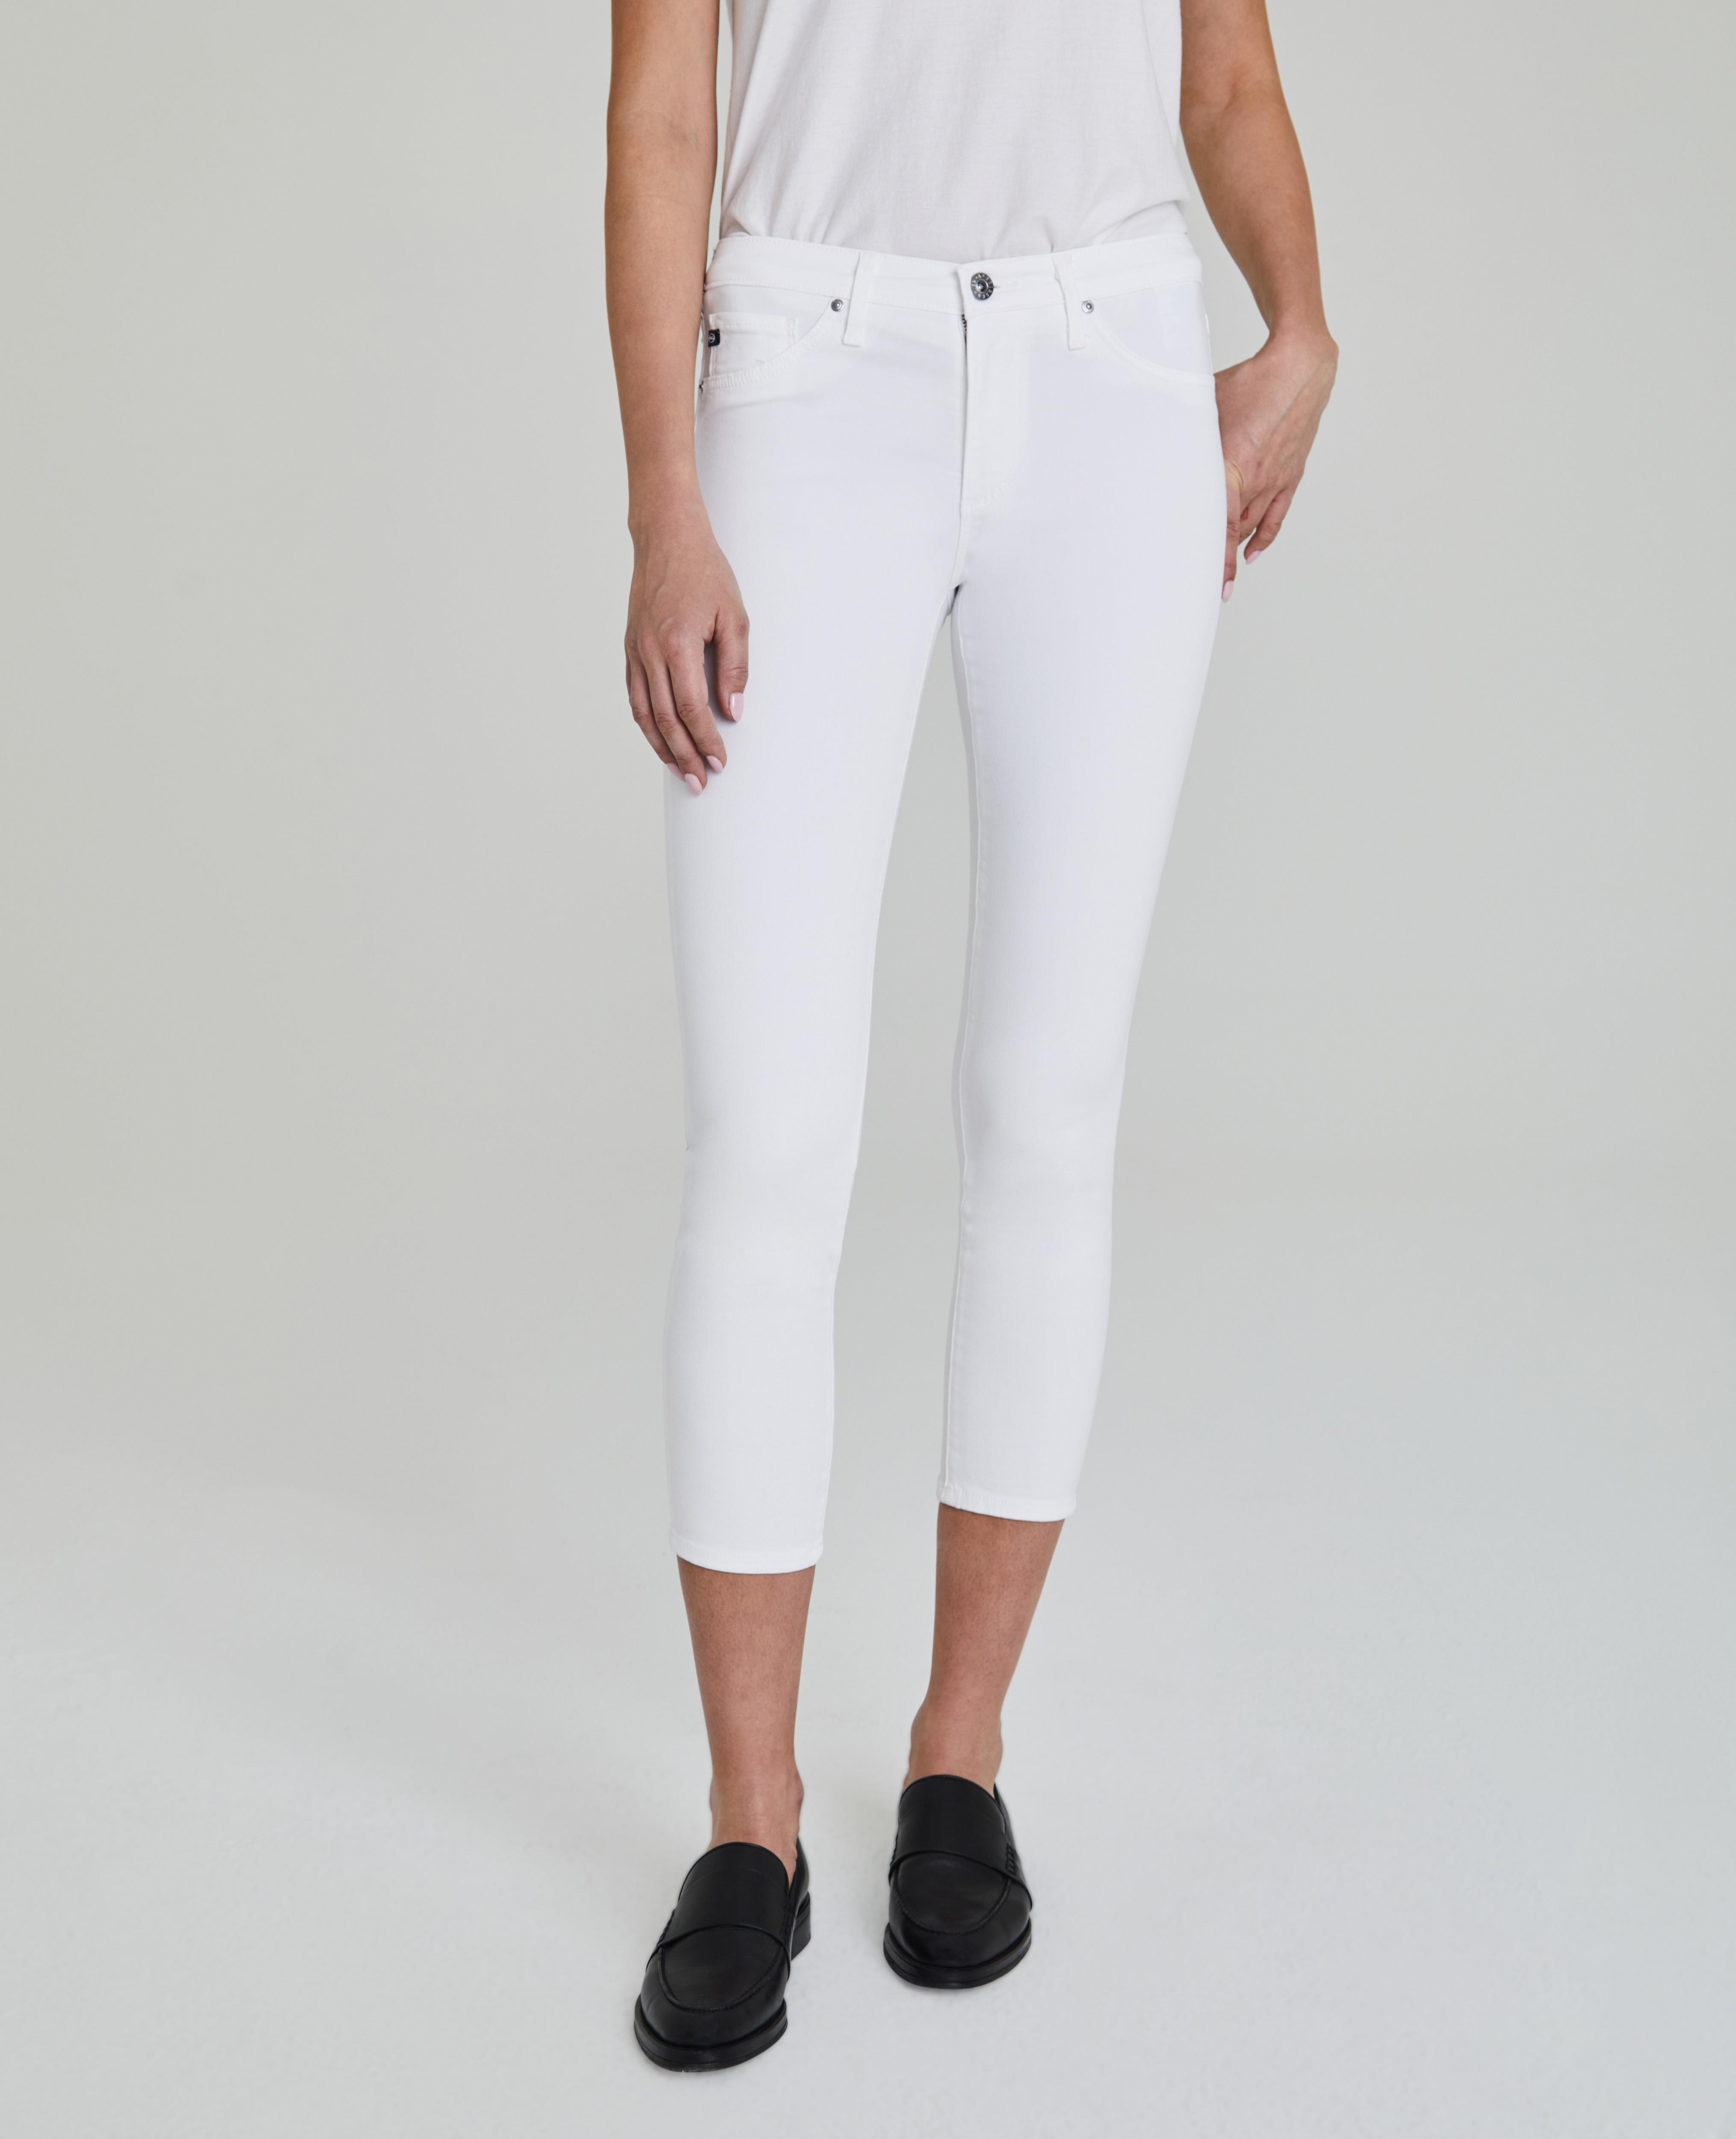 233191b0d3d The Prima Crop in White AG Jeans Official Store